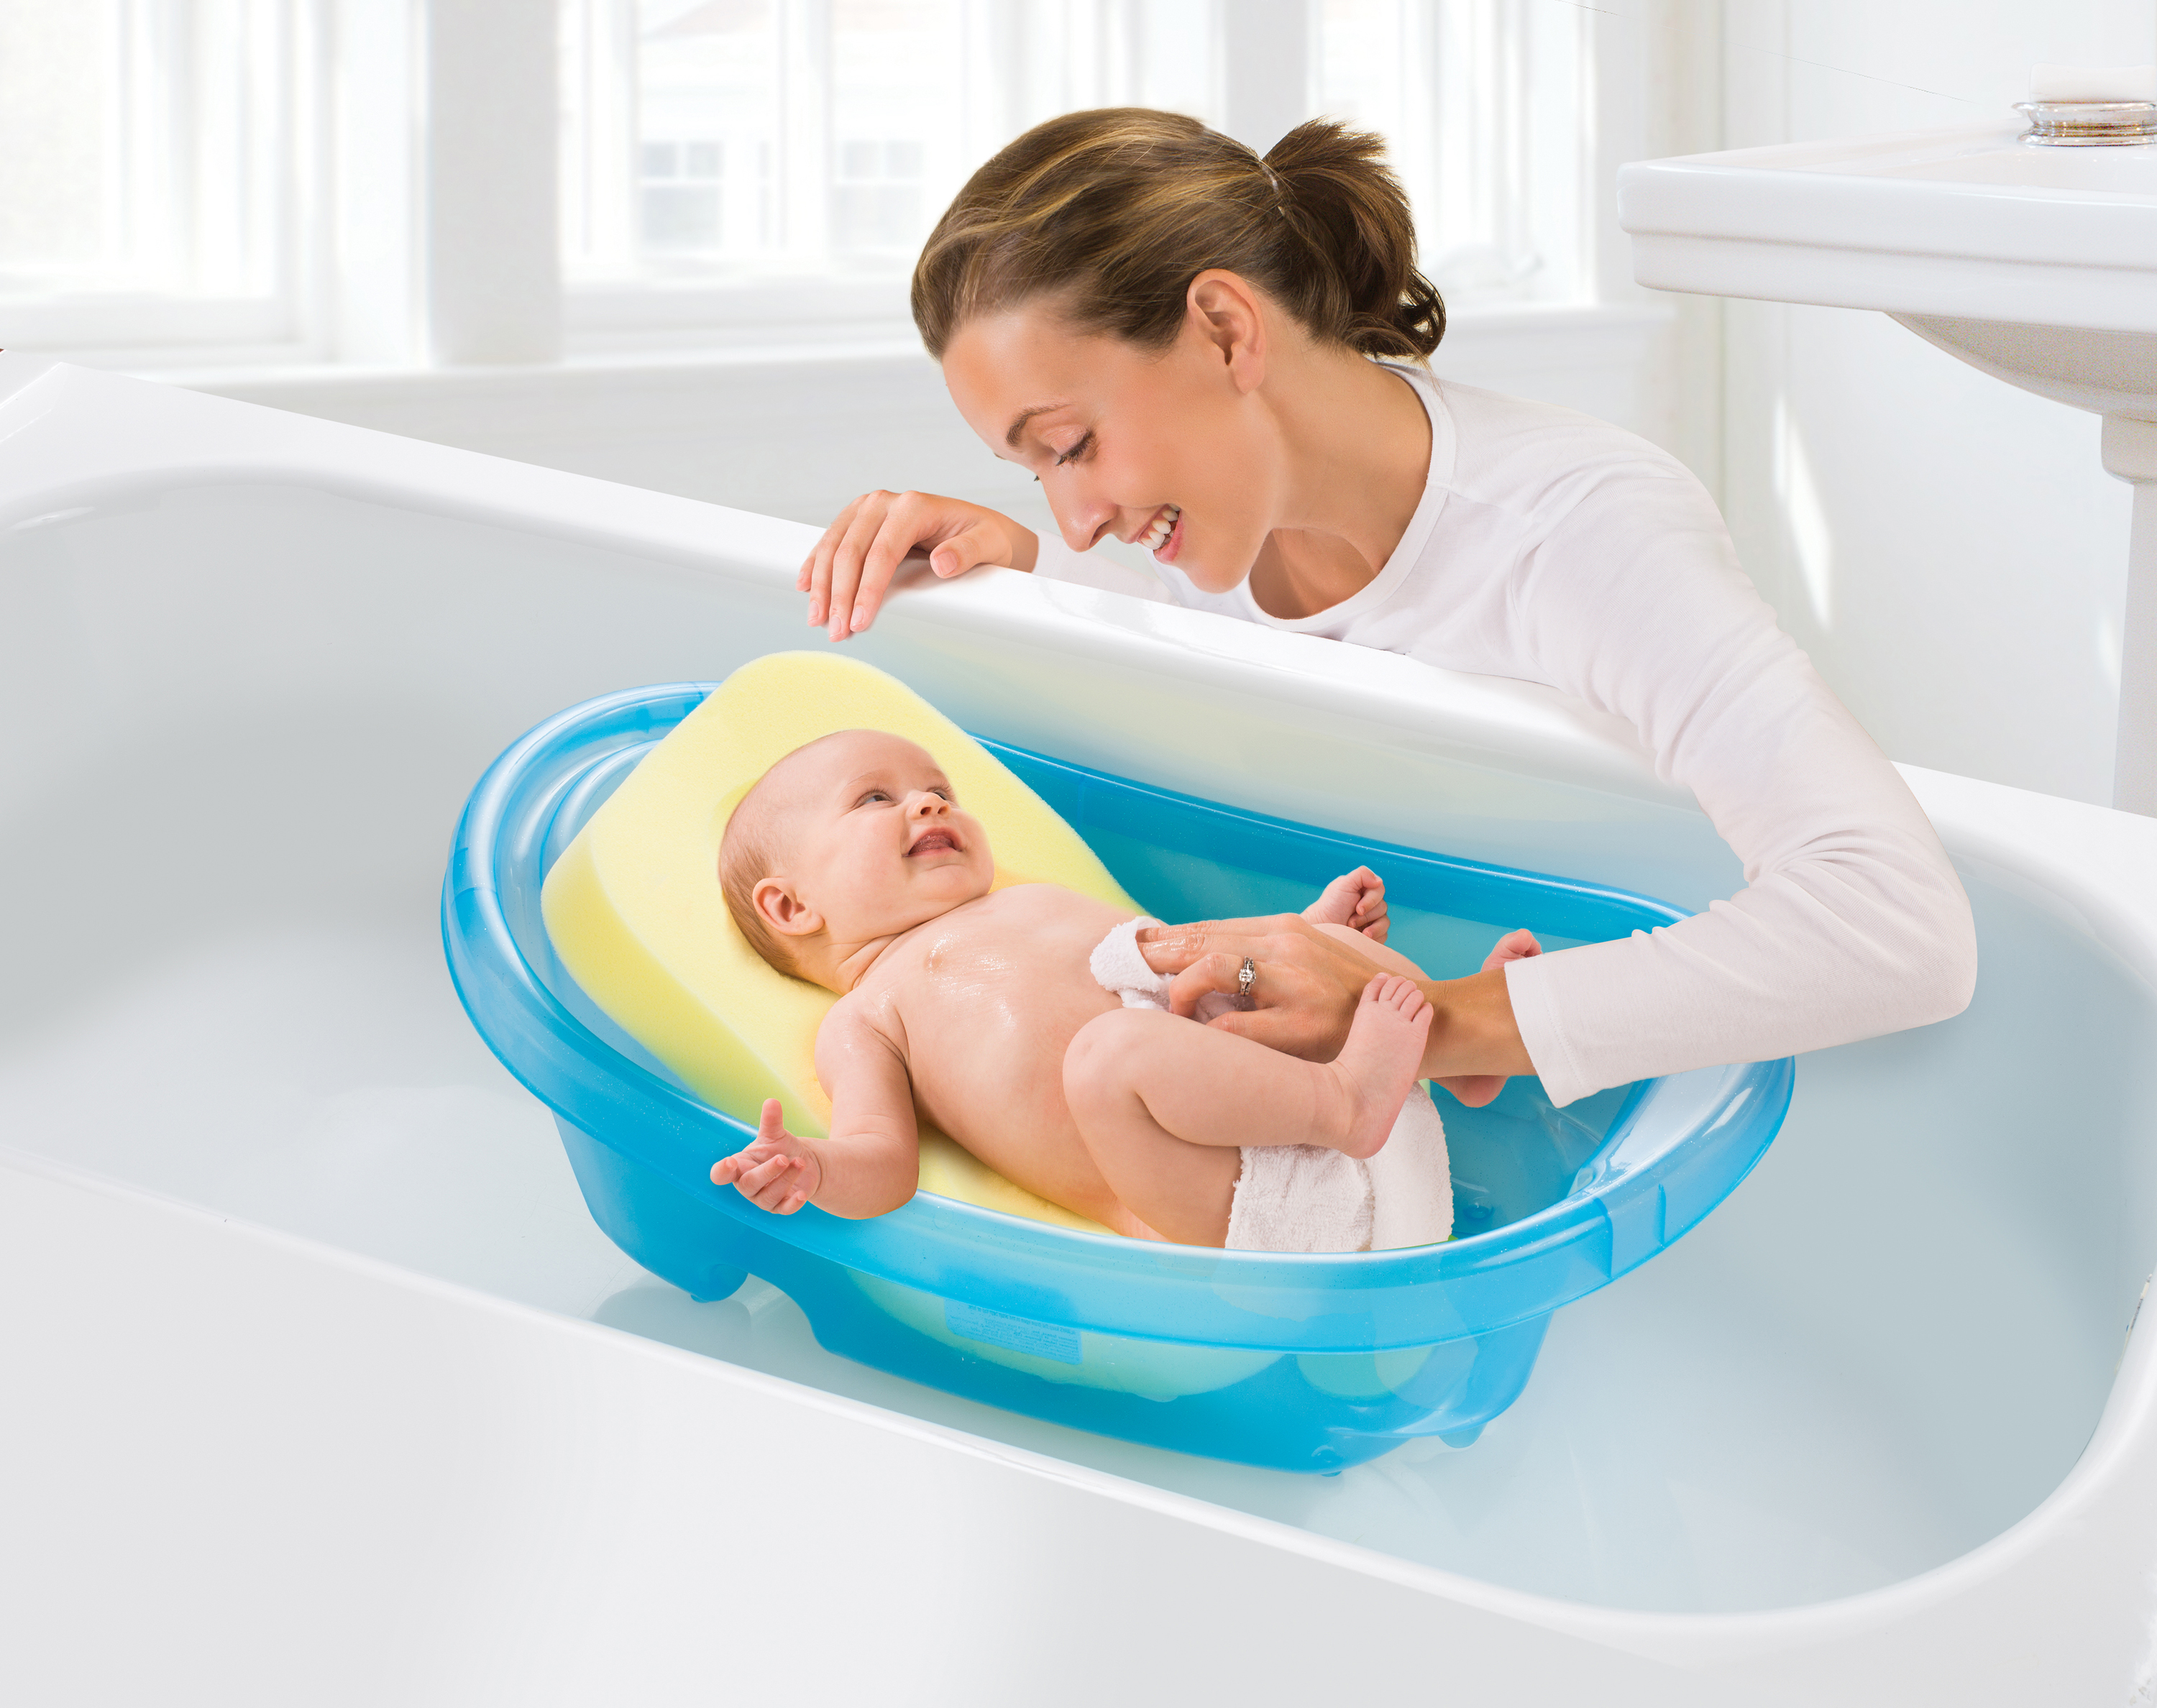 comfy bath sponge summer infant baby products